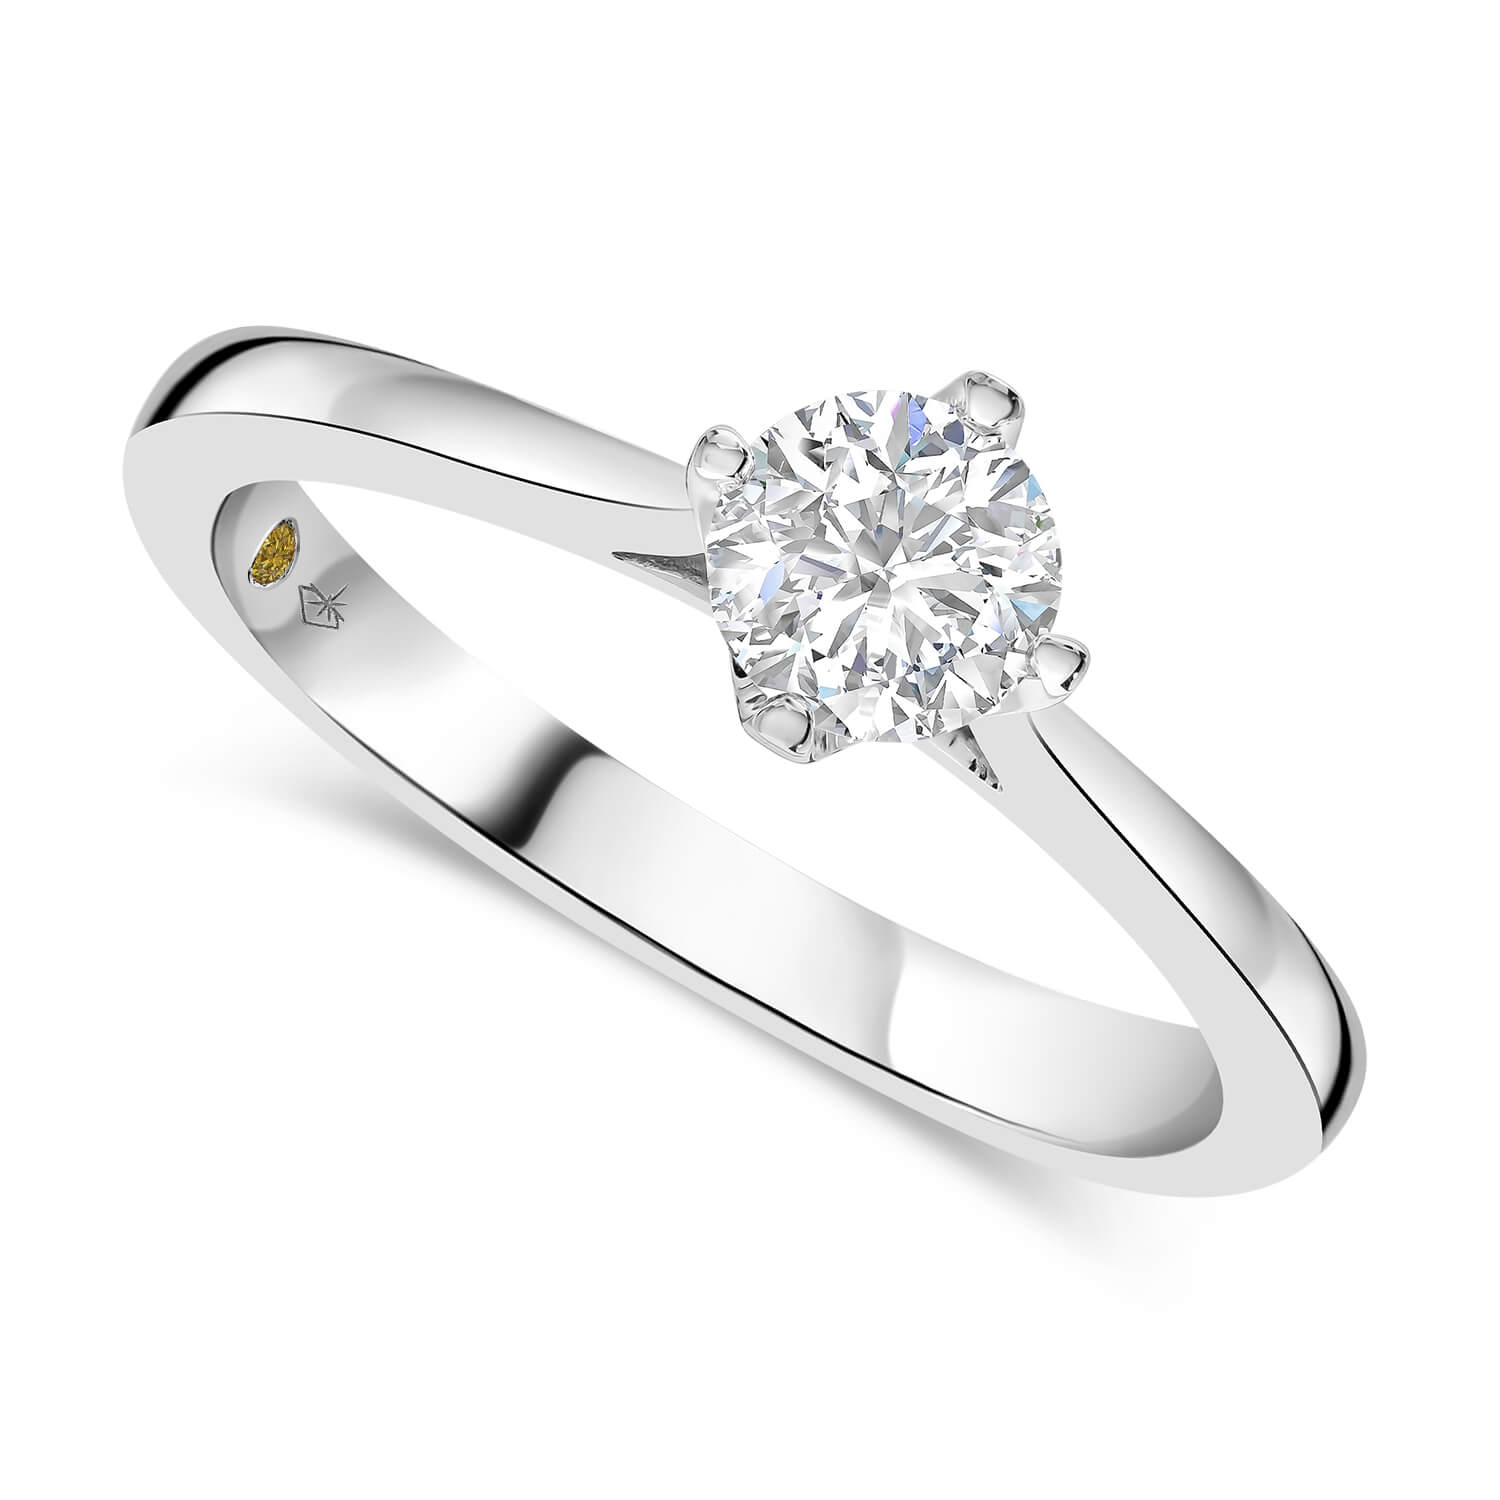 Northern Star 18ct White Gold Solitaire 0.50ct Ladies Ring